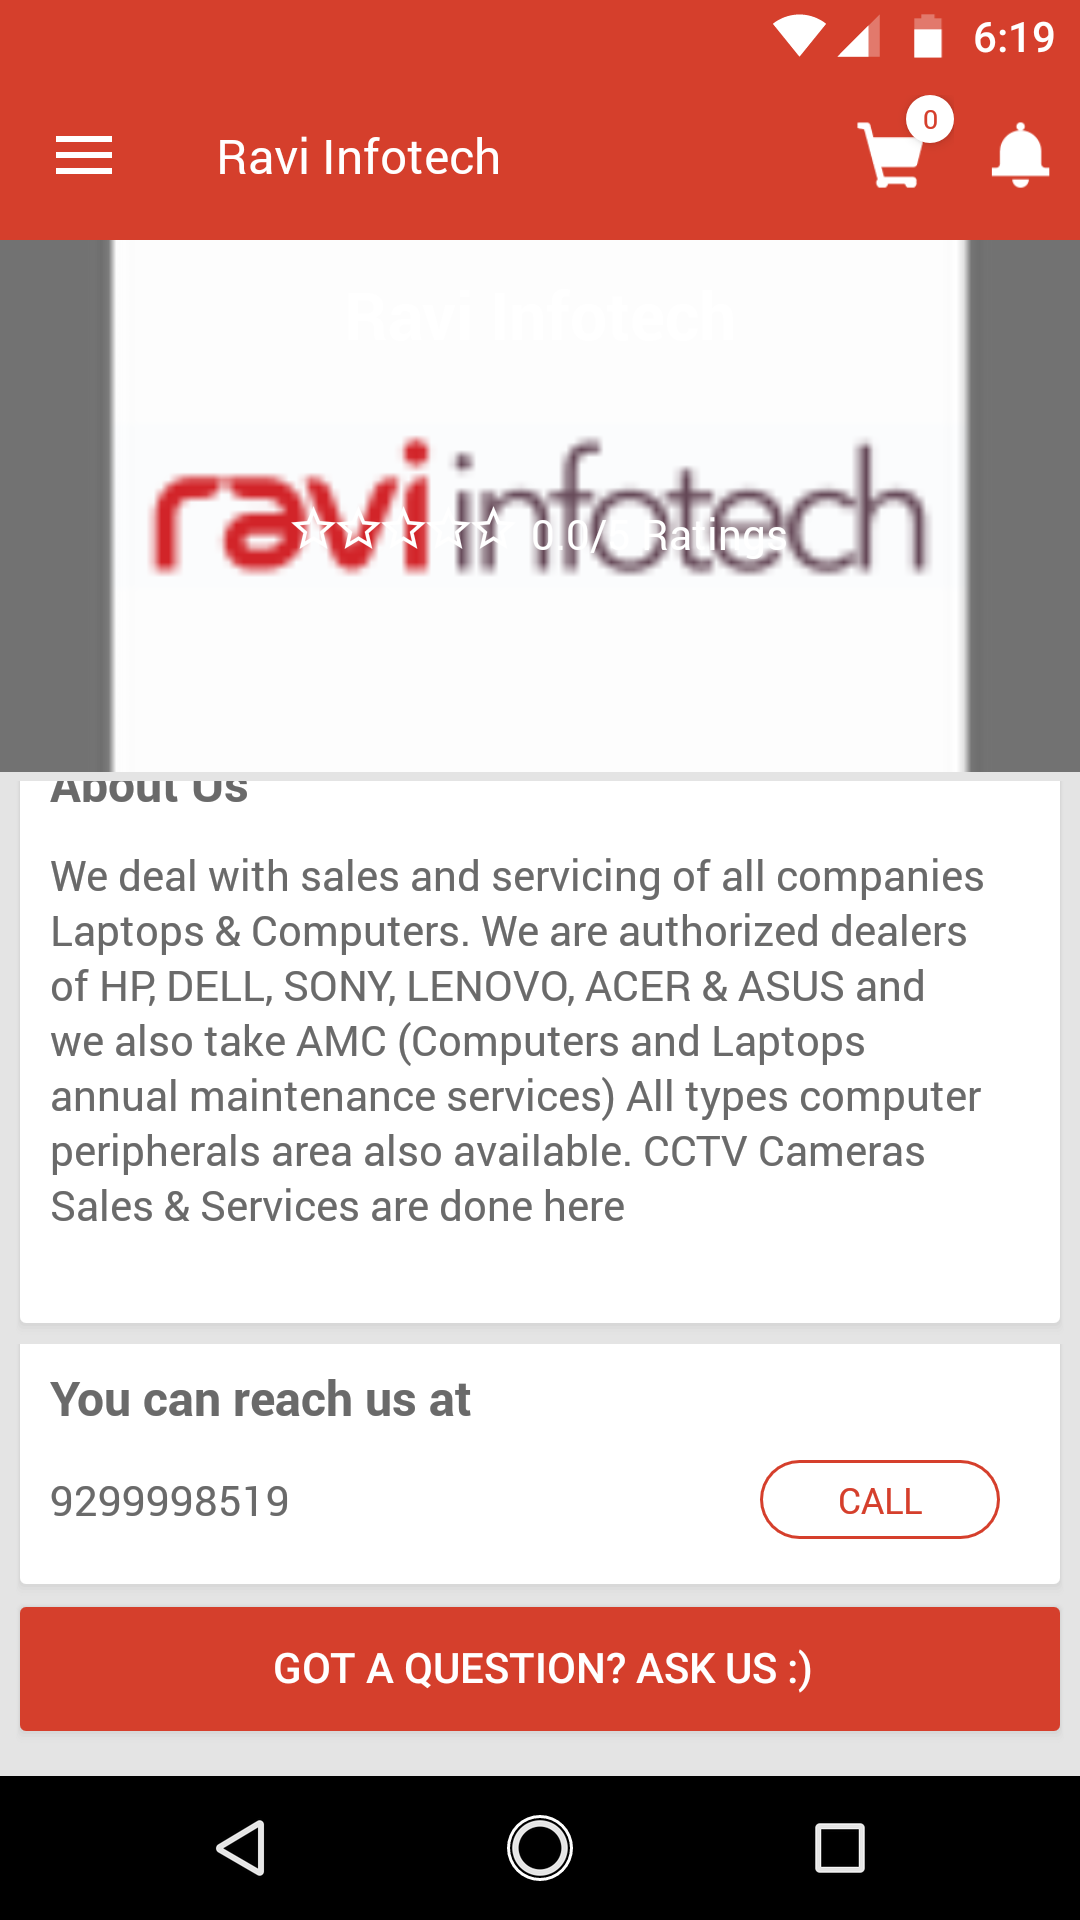 Ravi Infotech | Mobile App | Powered by StoreOnGo